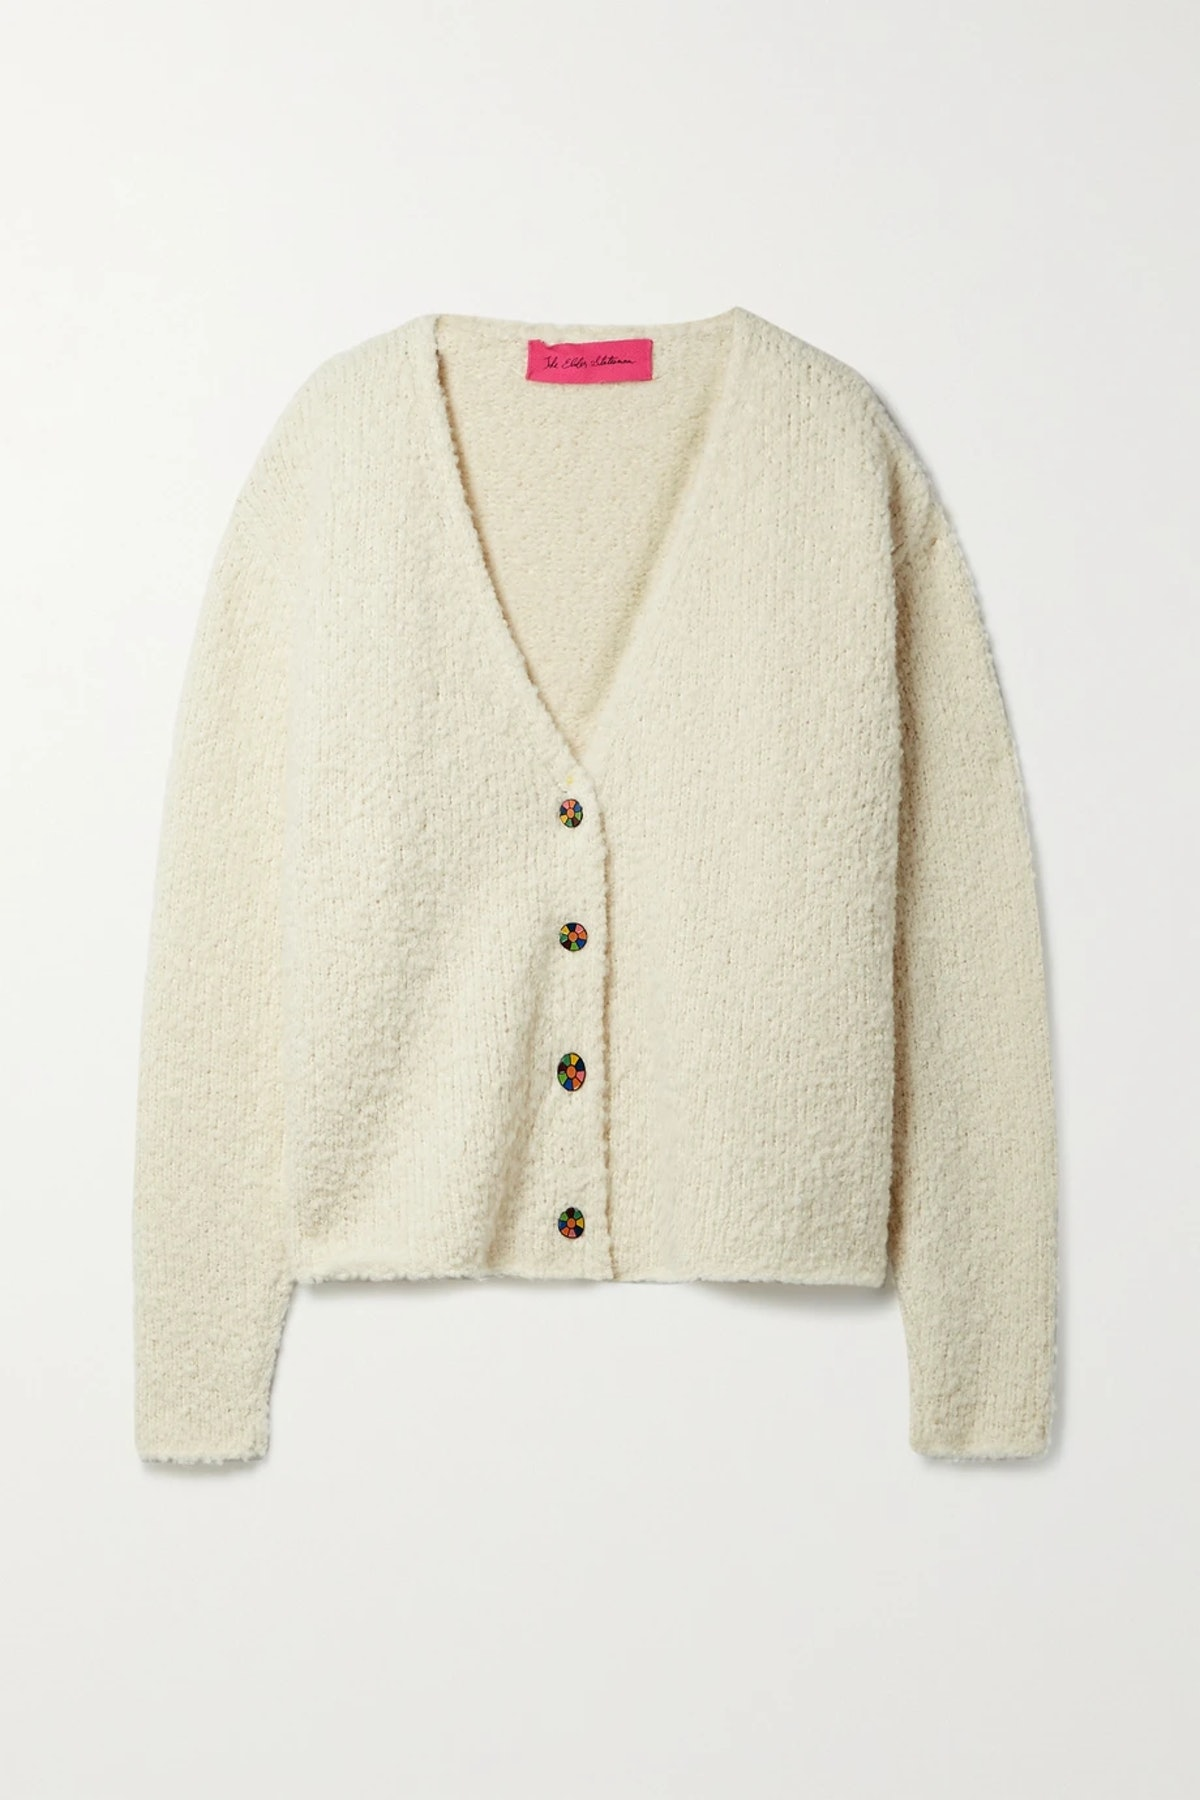 Teddy Mellow cashmere, alpaca and silk-blend cardigan from The Elder Statesman, available to shop on...